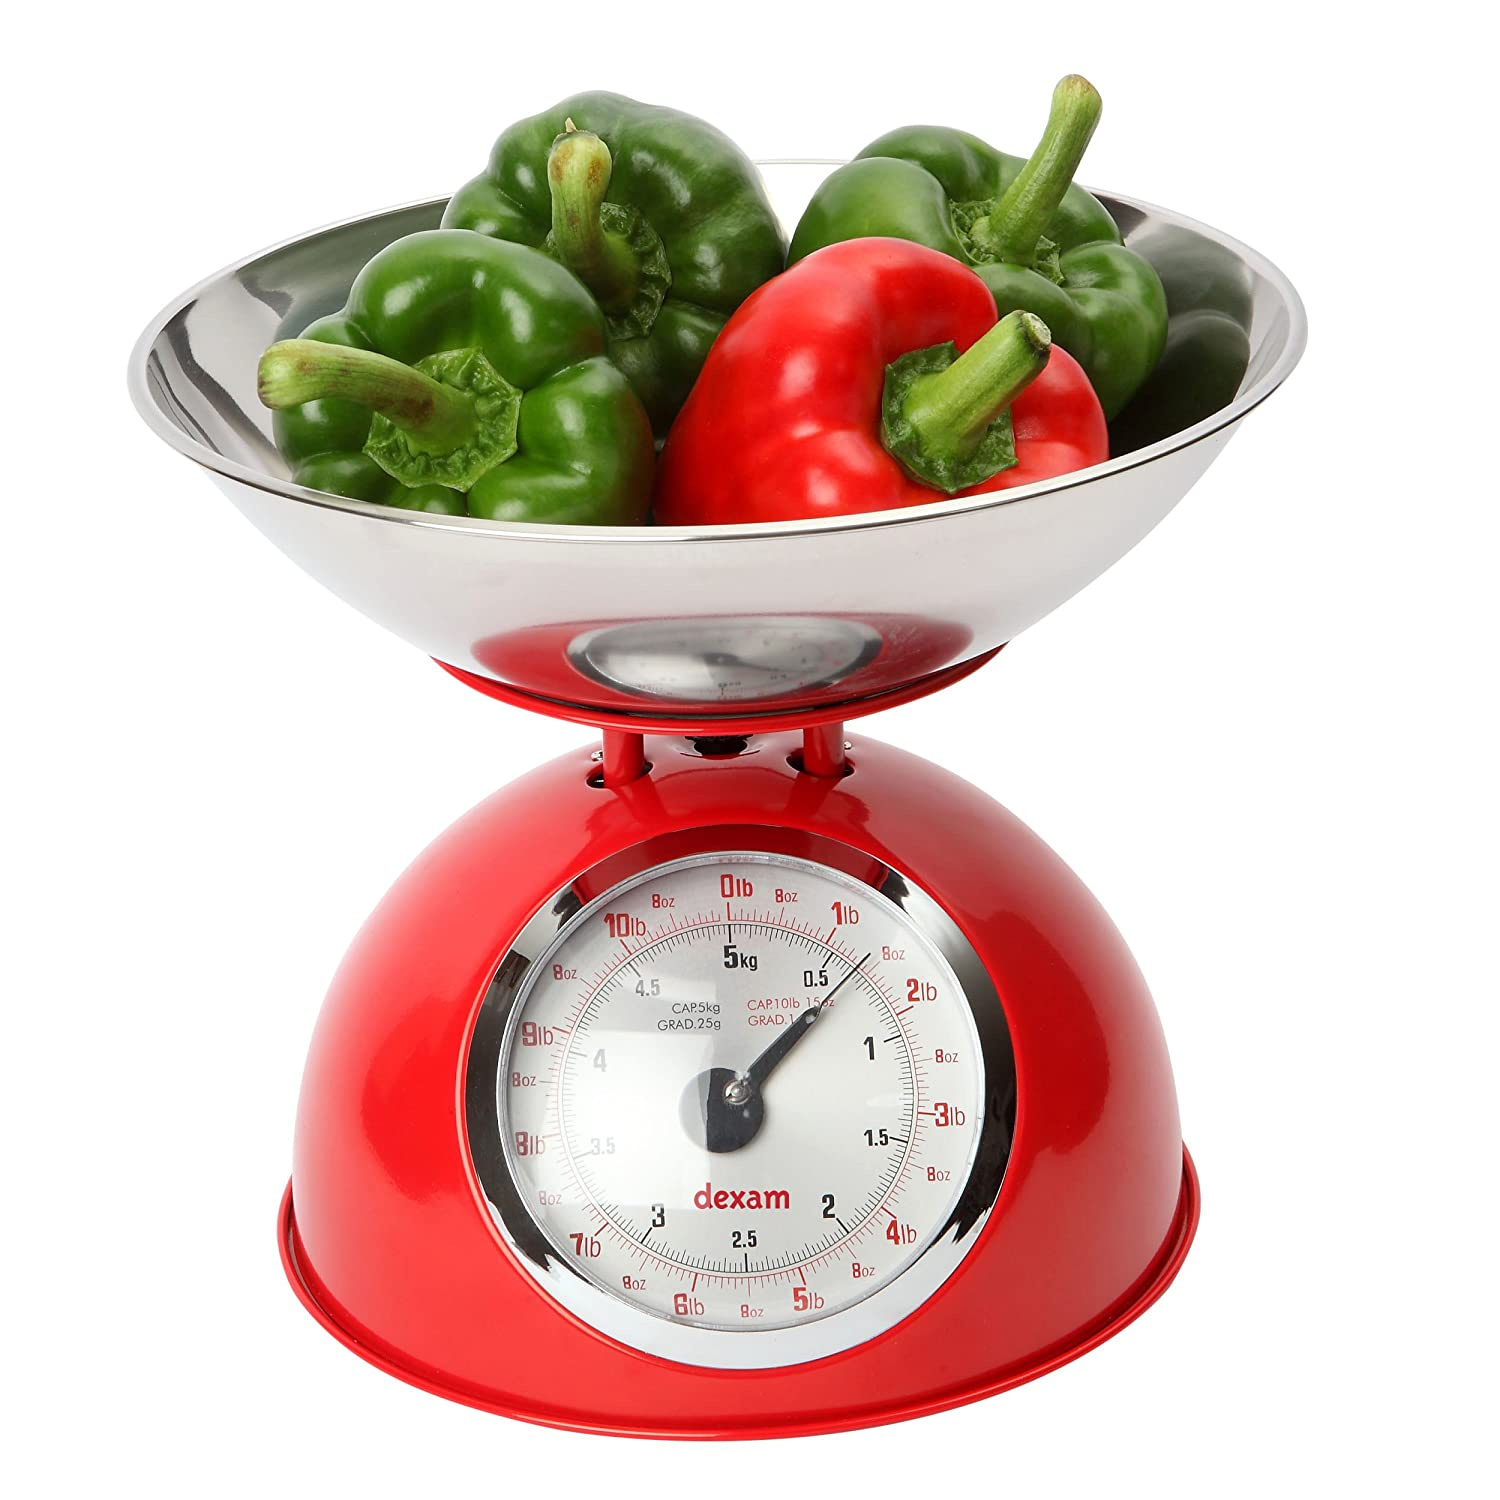 Dexam 5 Kg Stainless Steel Retro Kitchen Scales with a Large Bowl, Red 17848105